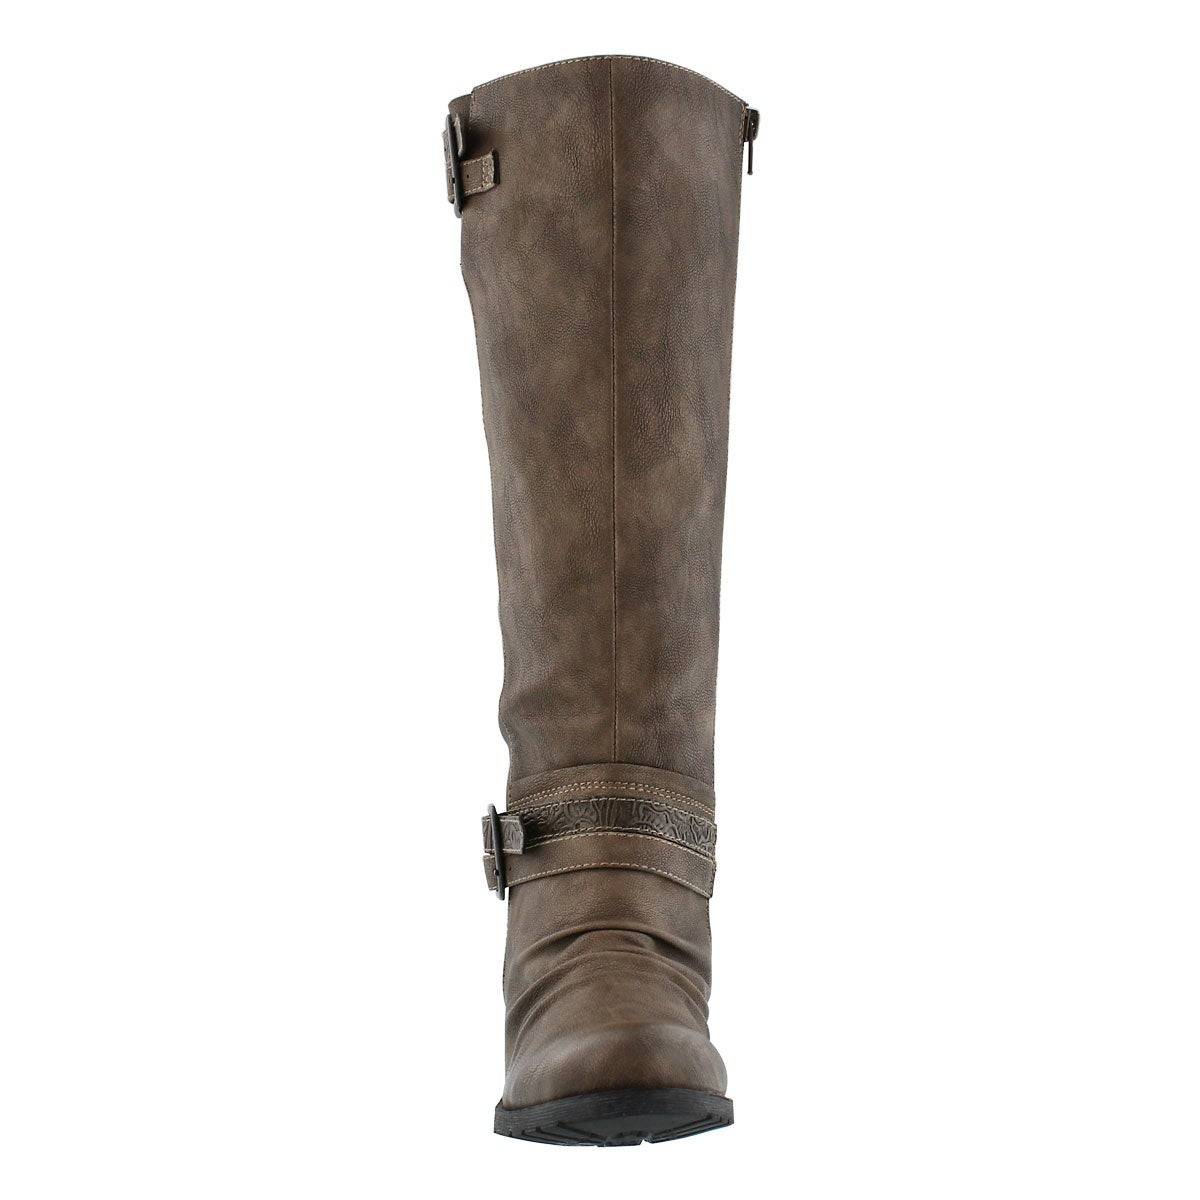 Lds Blixi II grey riding boot